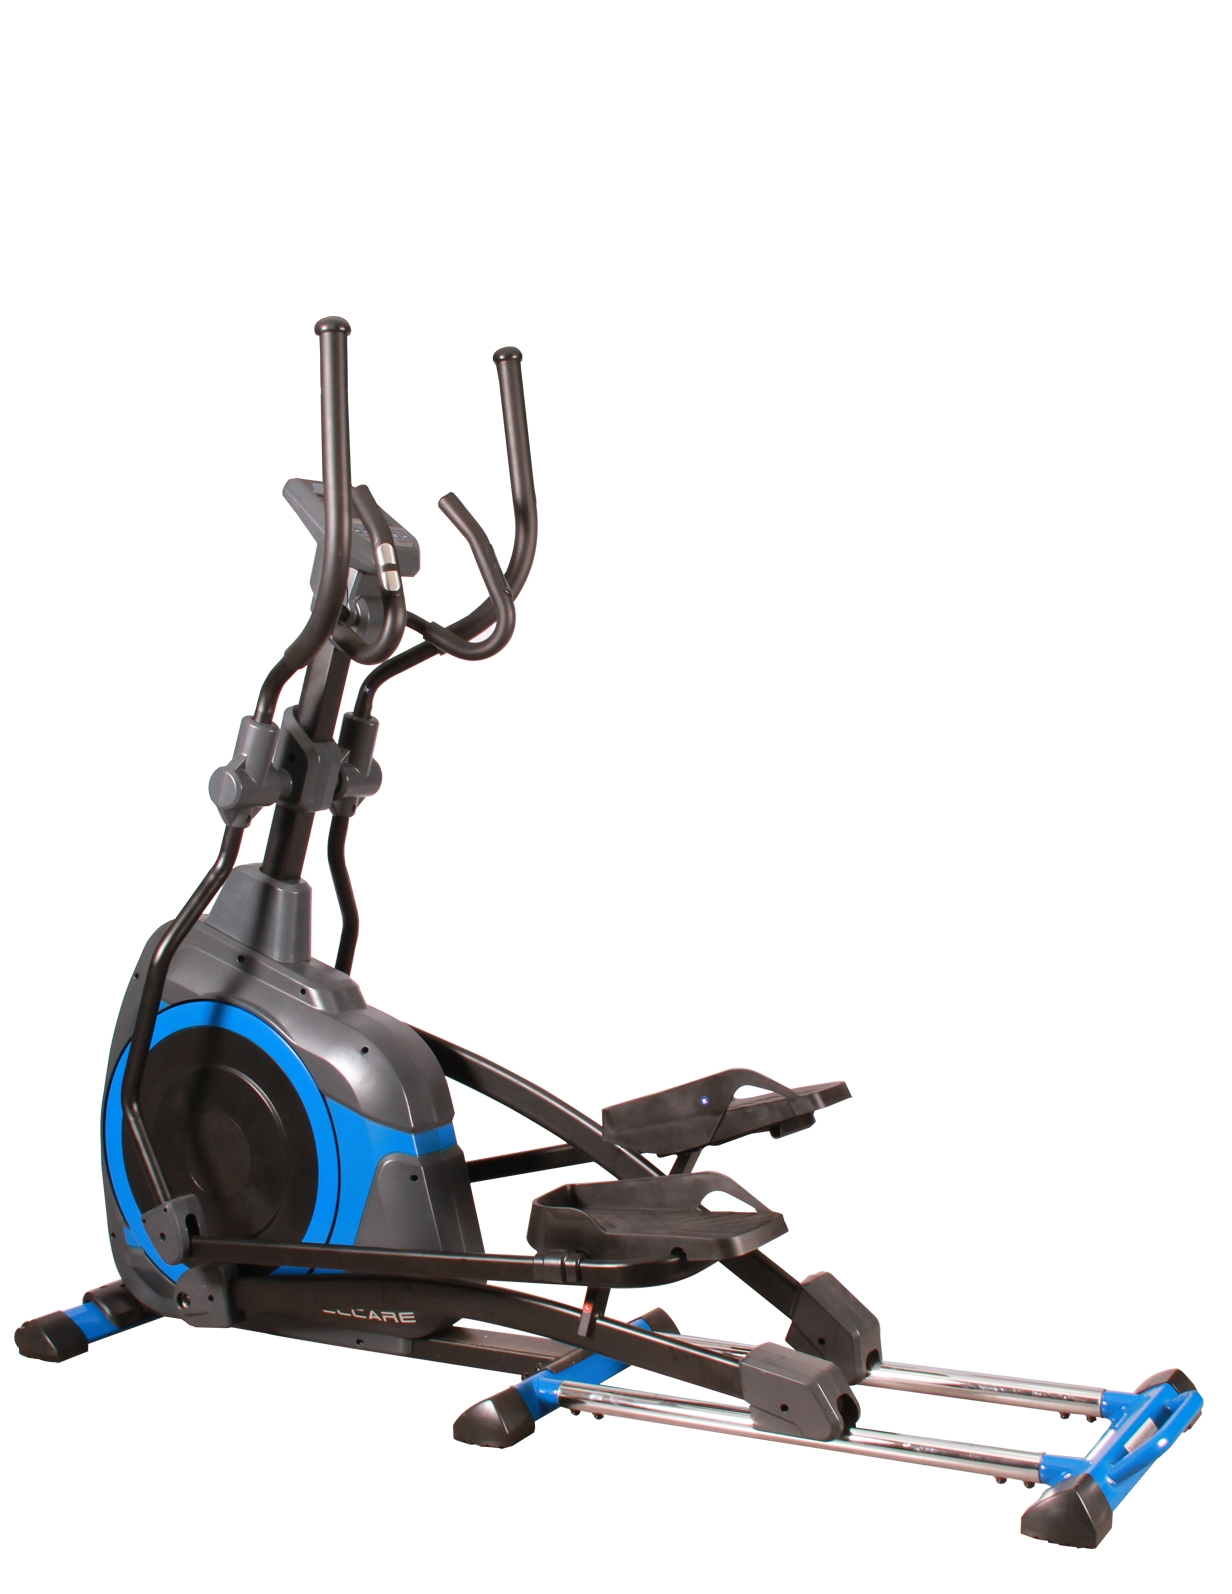 WC 6055 – ELLIPTICAL TRAINER